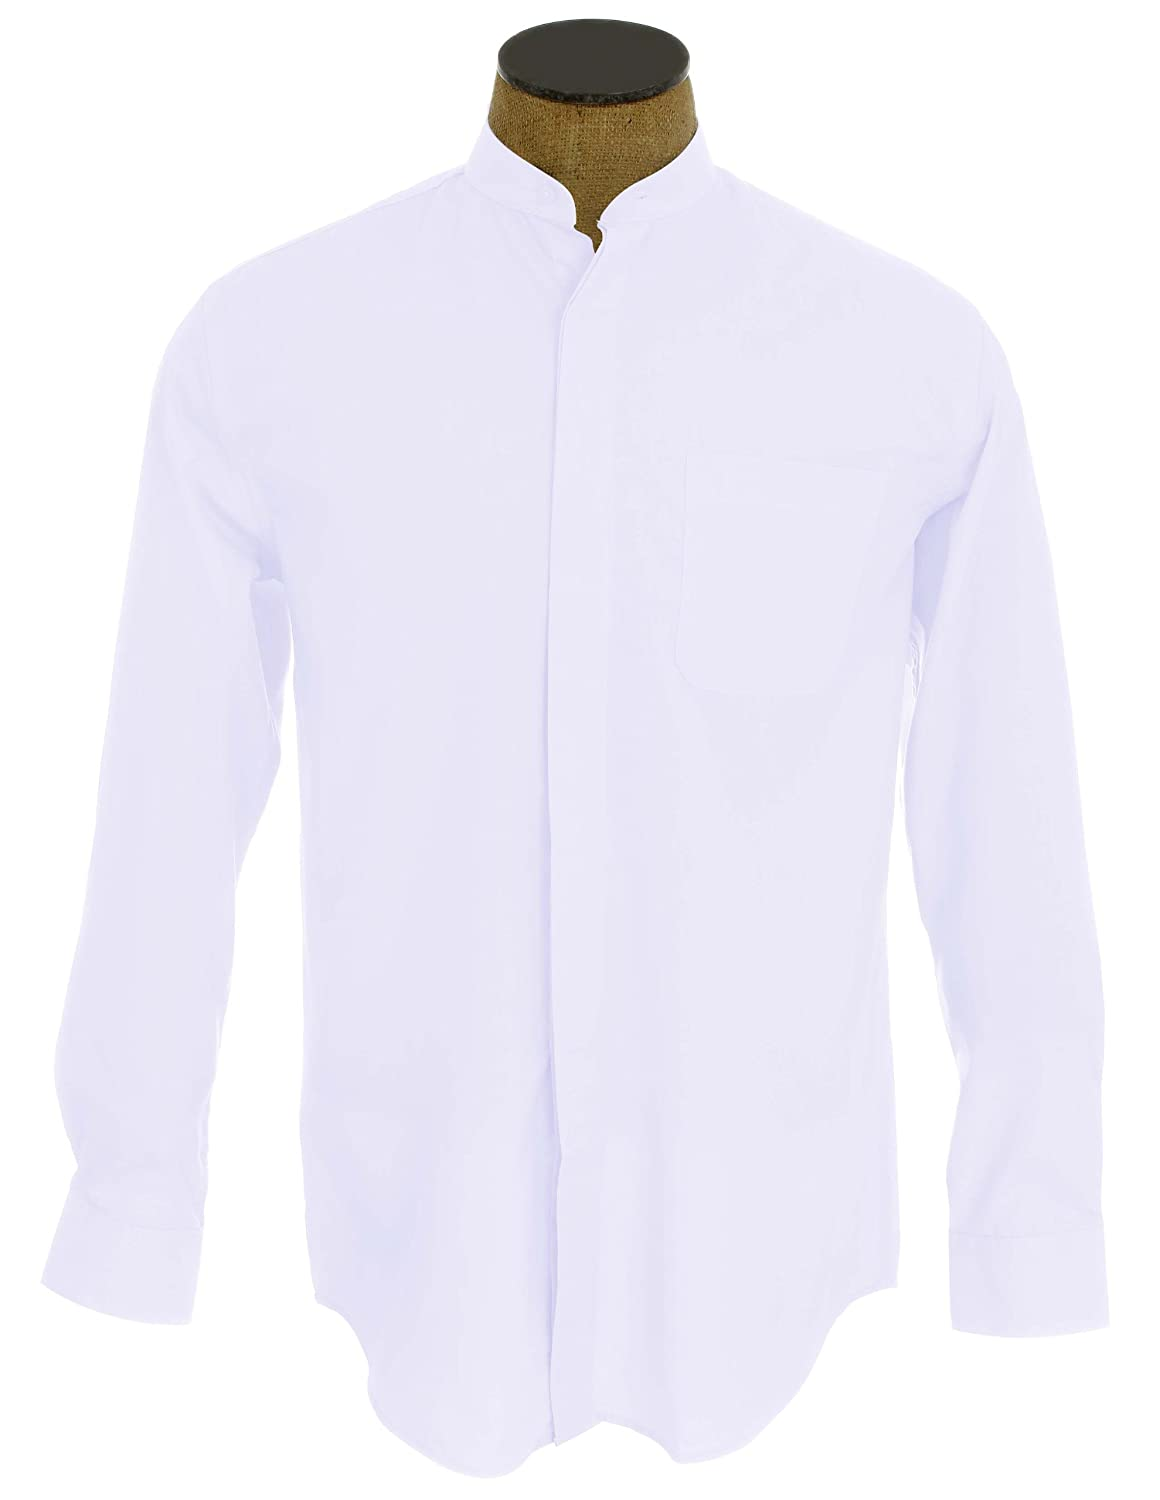 1910s Men's Edwardian Fashion and Clothing Guide Banded Collar Dress Shirt $21.95 AT vintagedancer.com